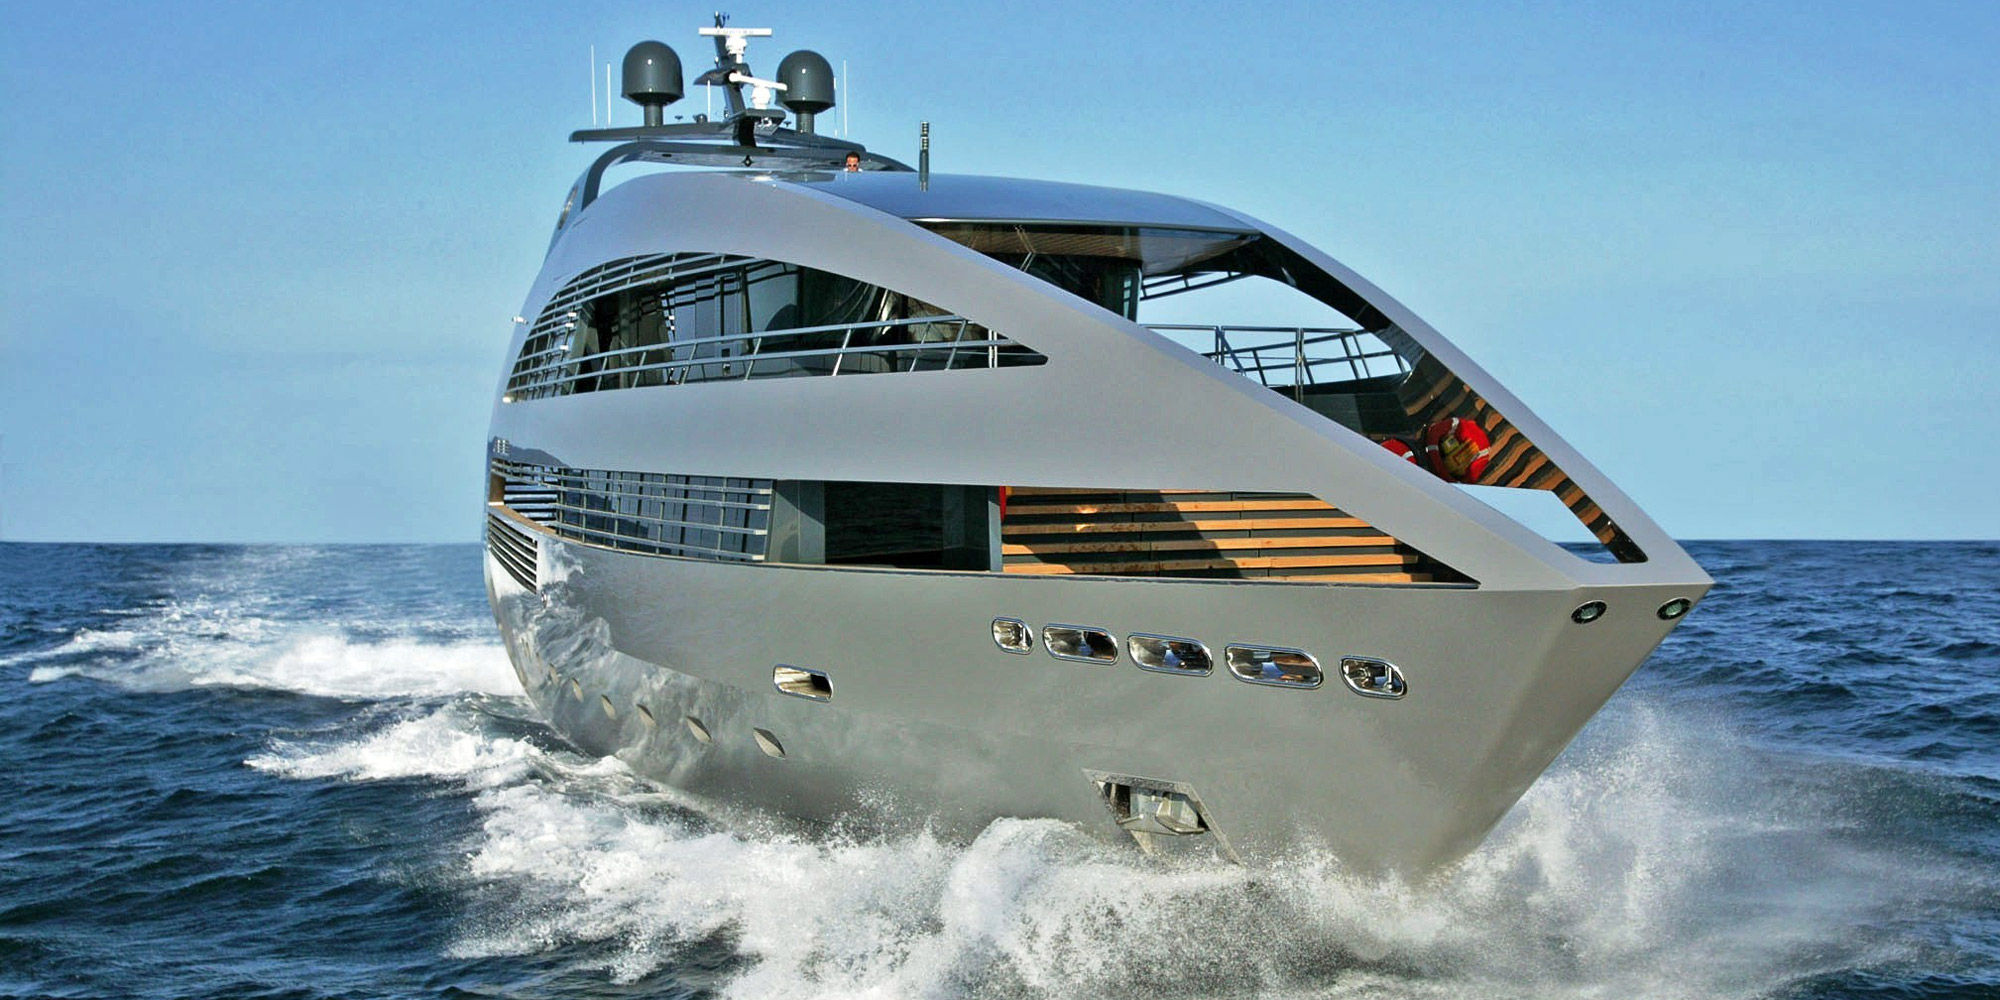 Motor Yacht Charter | Nicholson Yacht Charters & Services